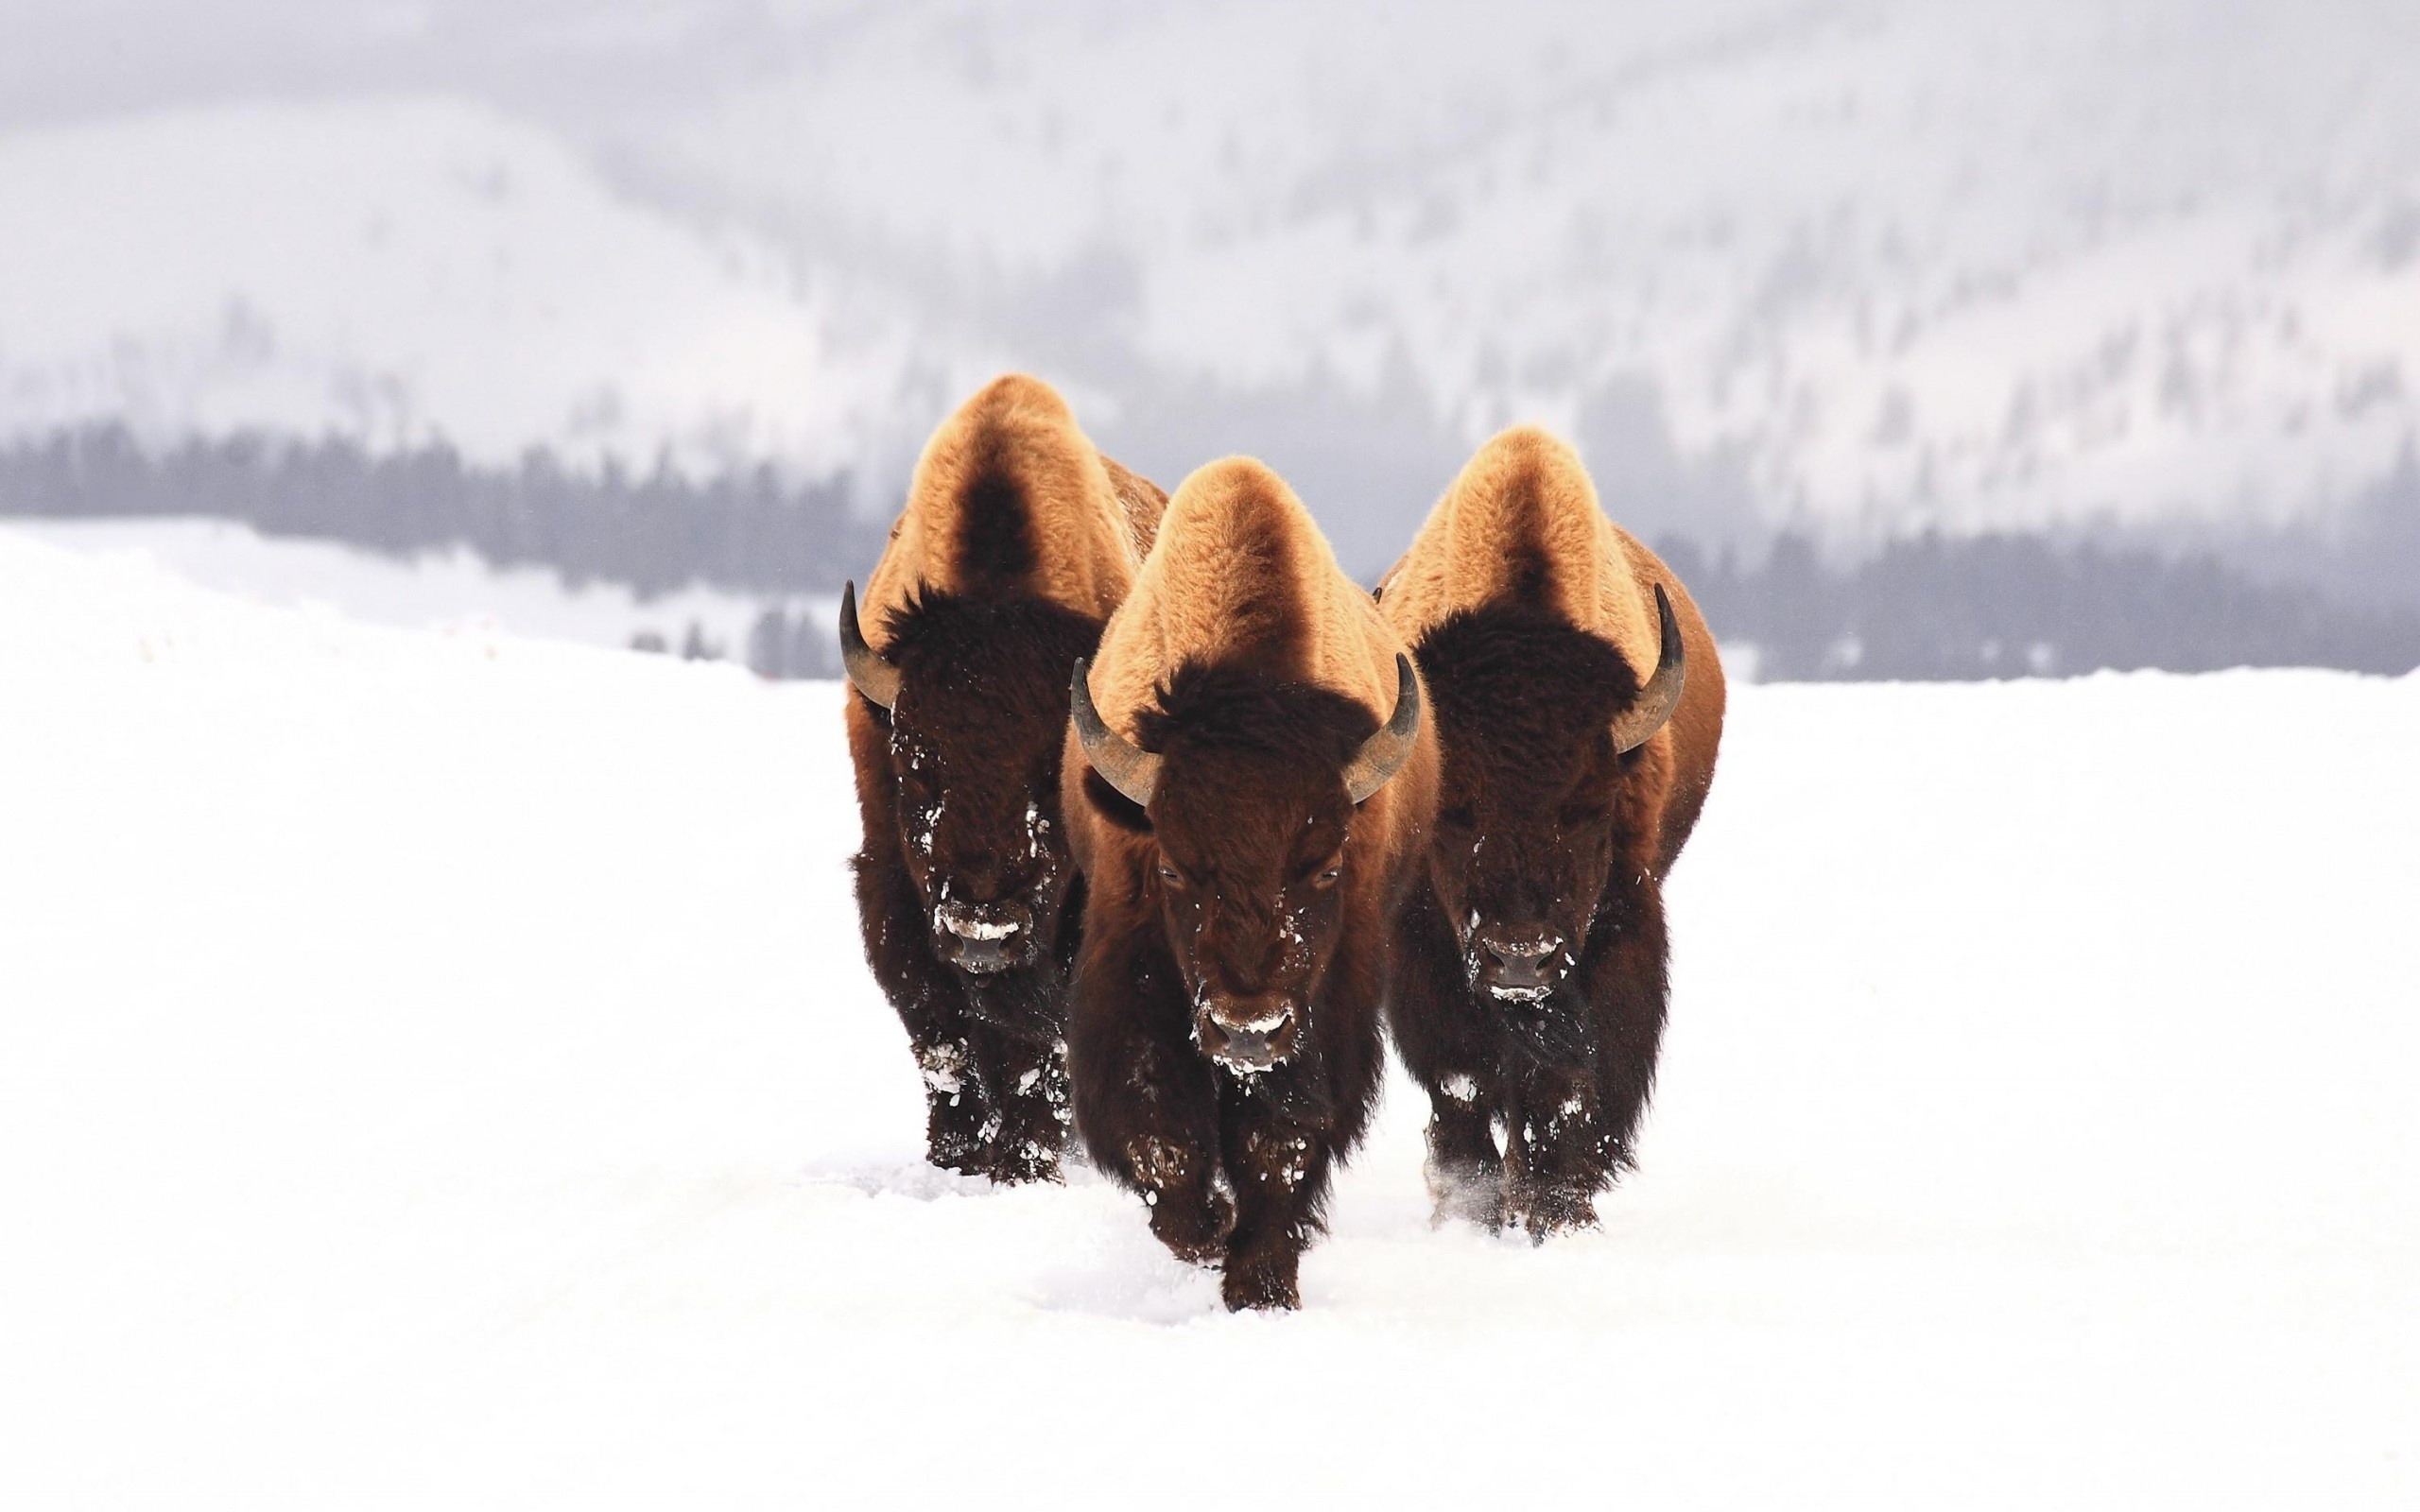 american bison images